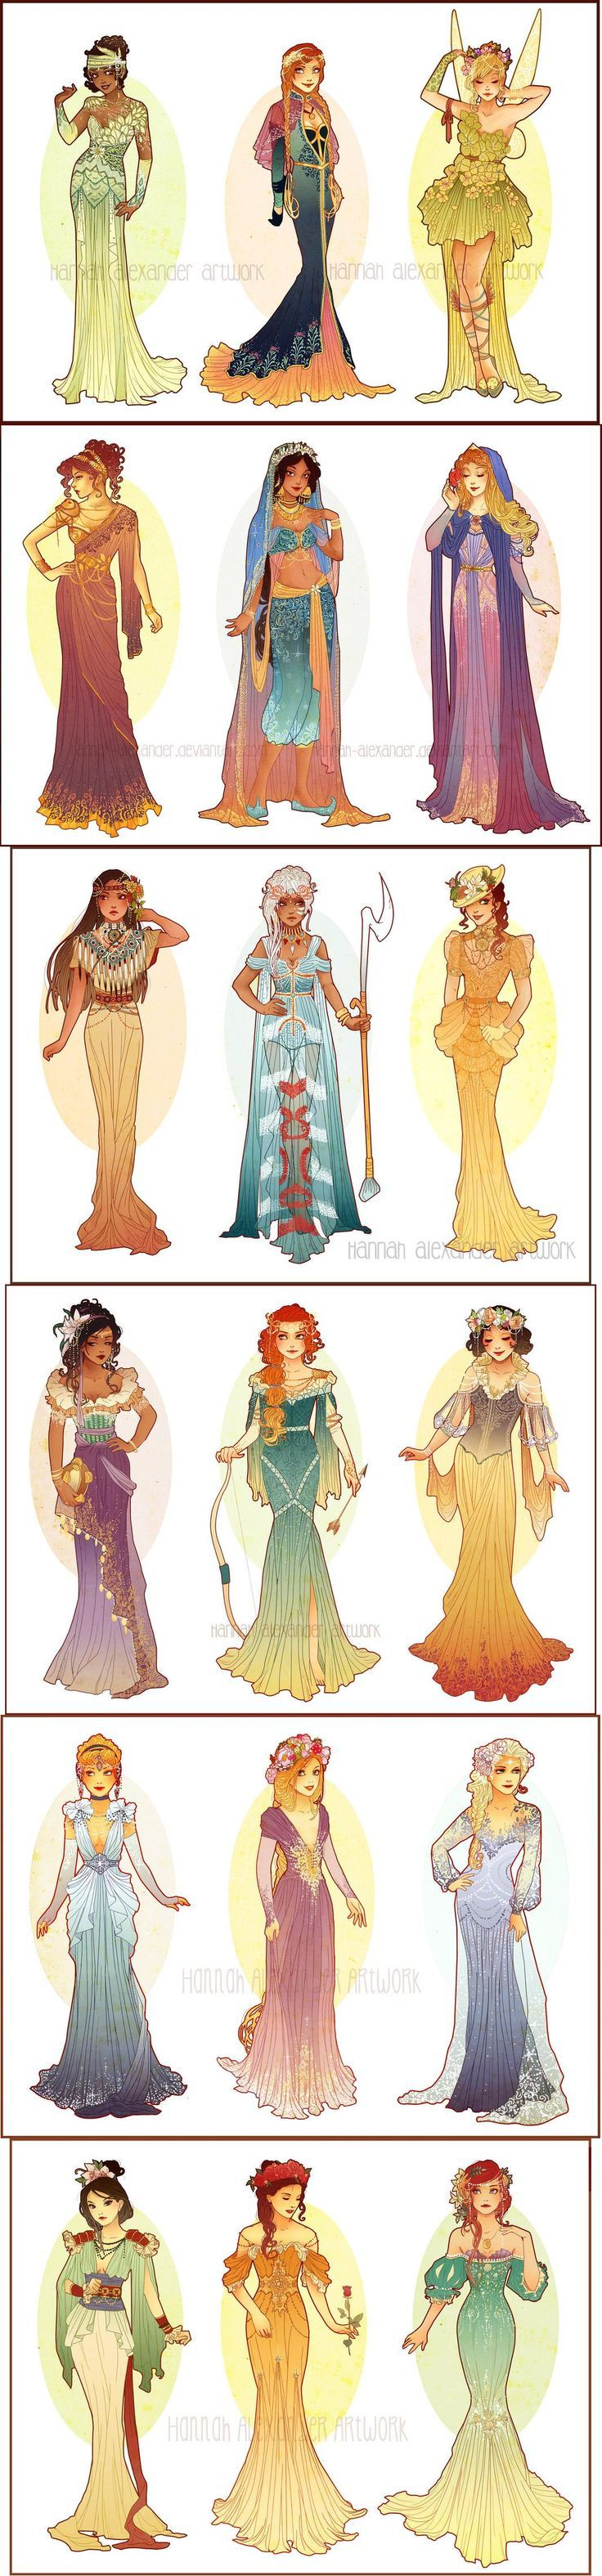 Disney Princess Character Design : Art nouveau costume designs by hannah alexander